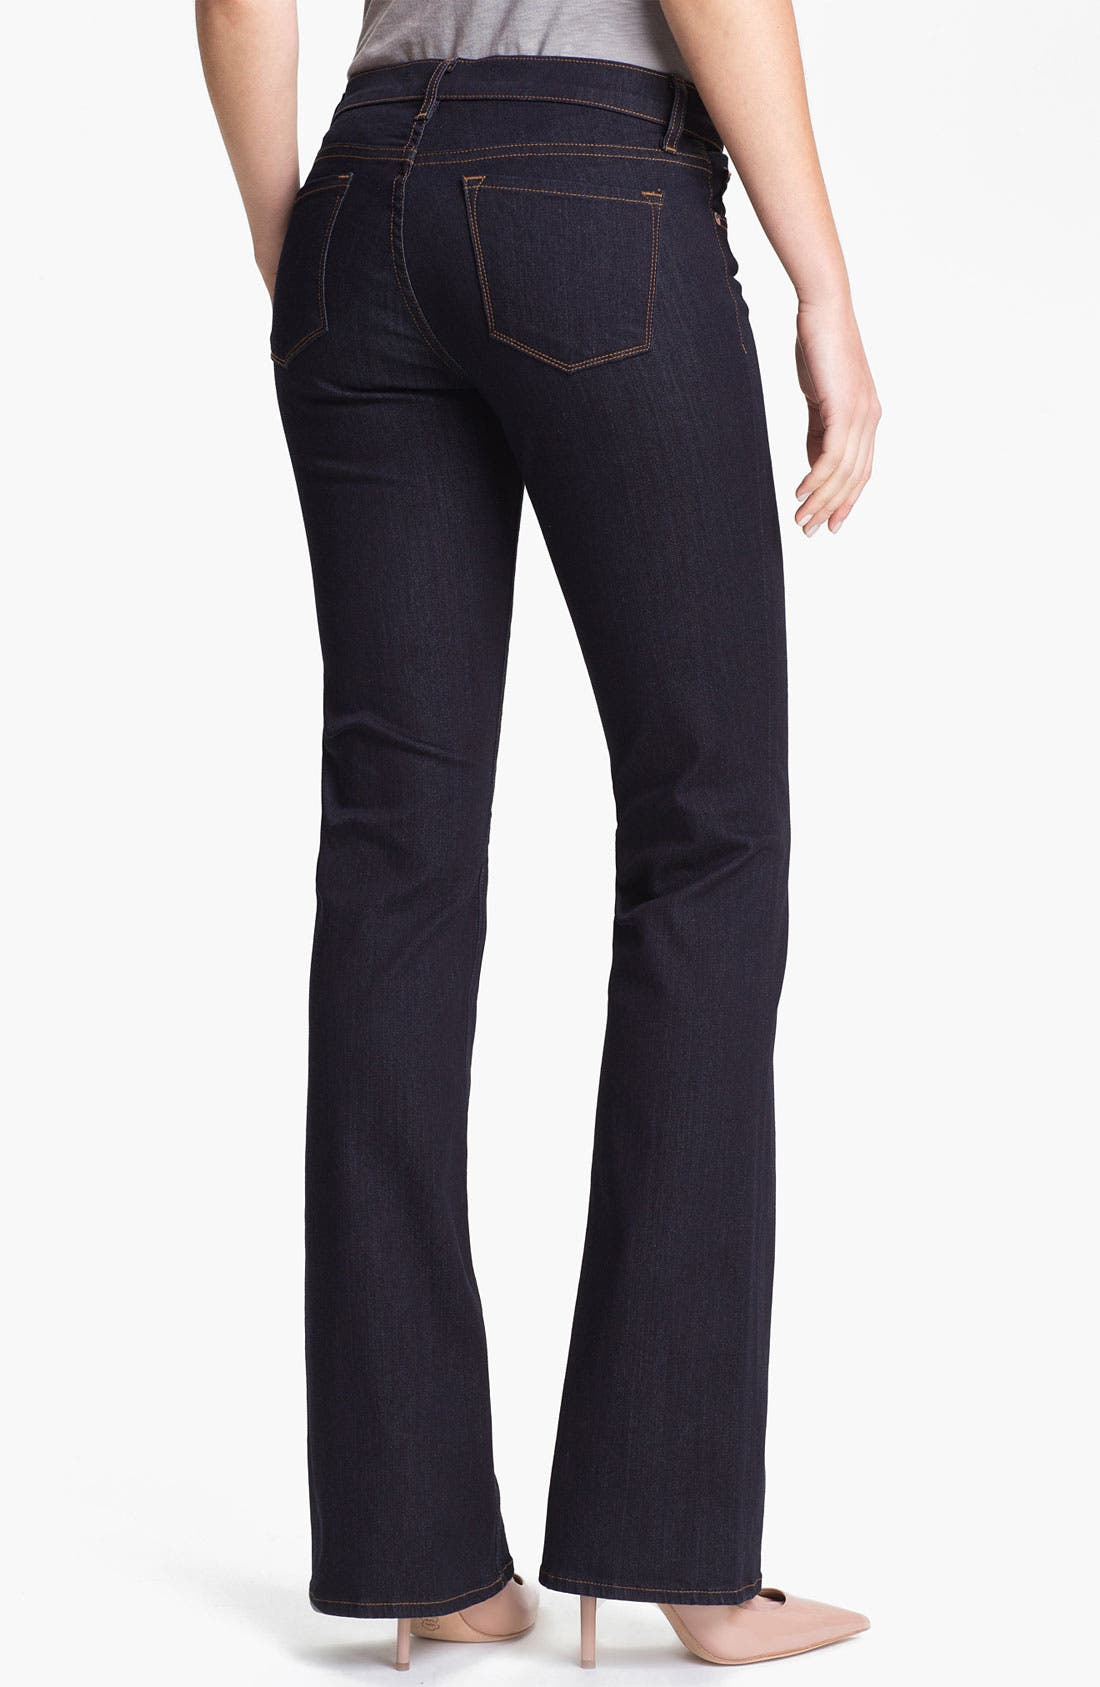 Alternate Image 2  - J Brand Slim Bootcut Stretch Jeans (Starless Wash)